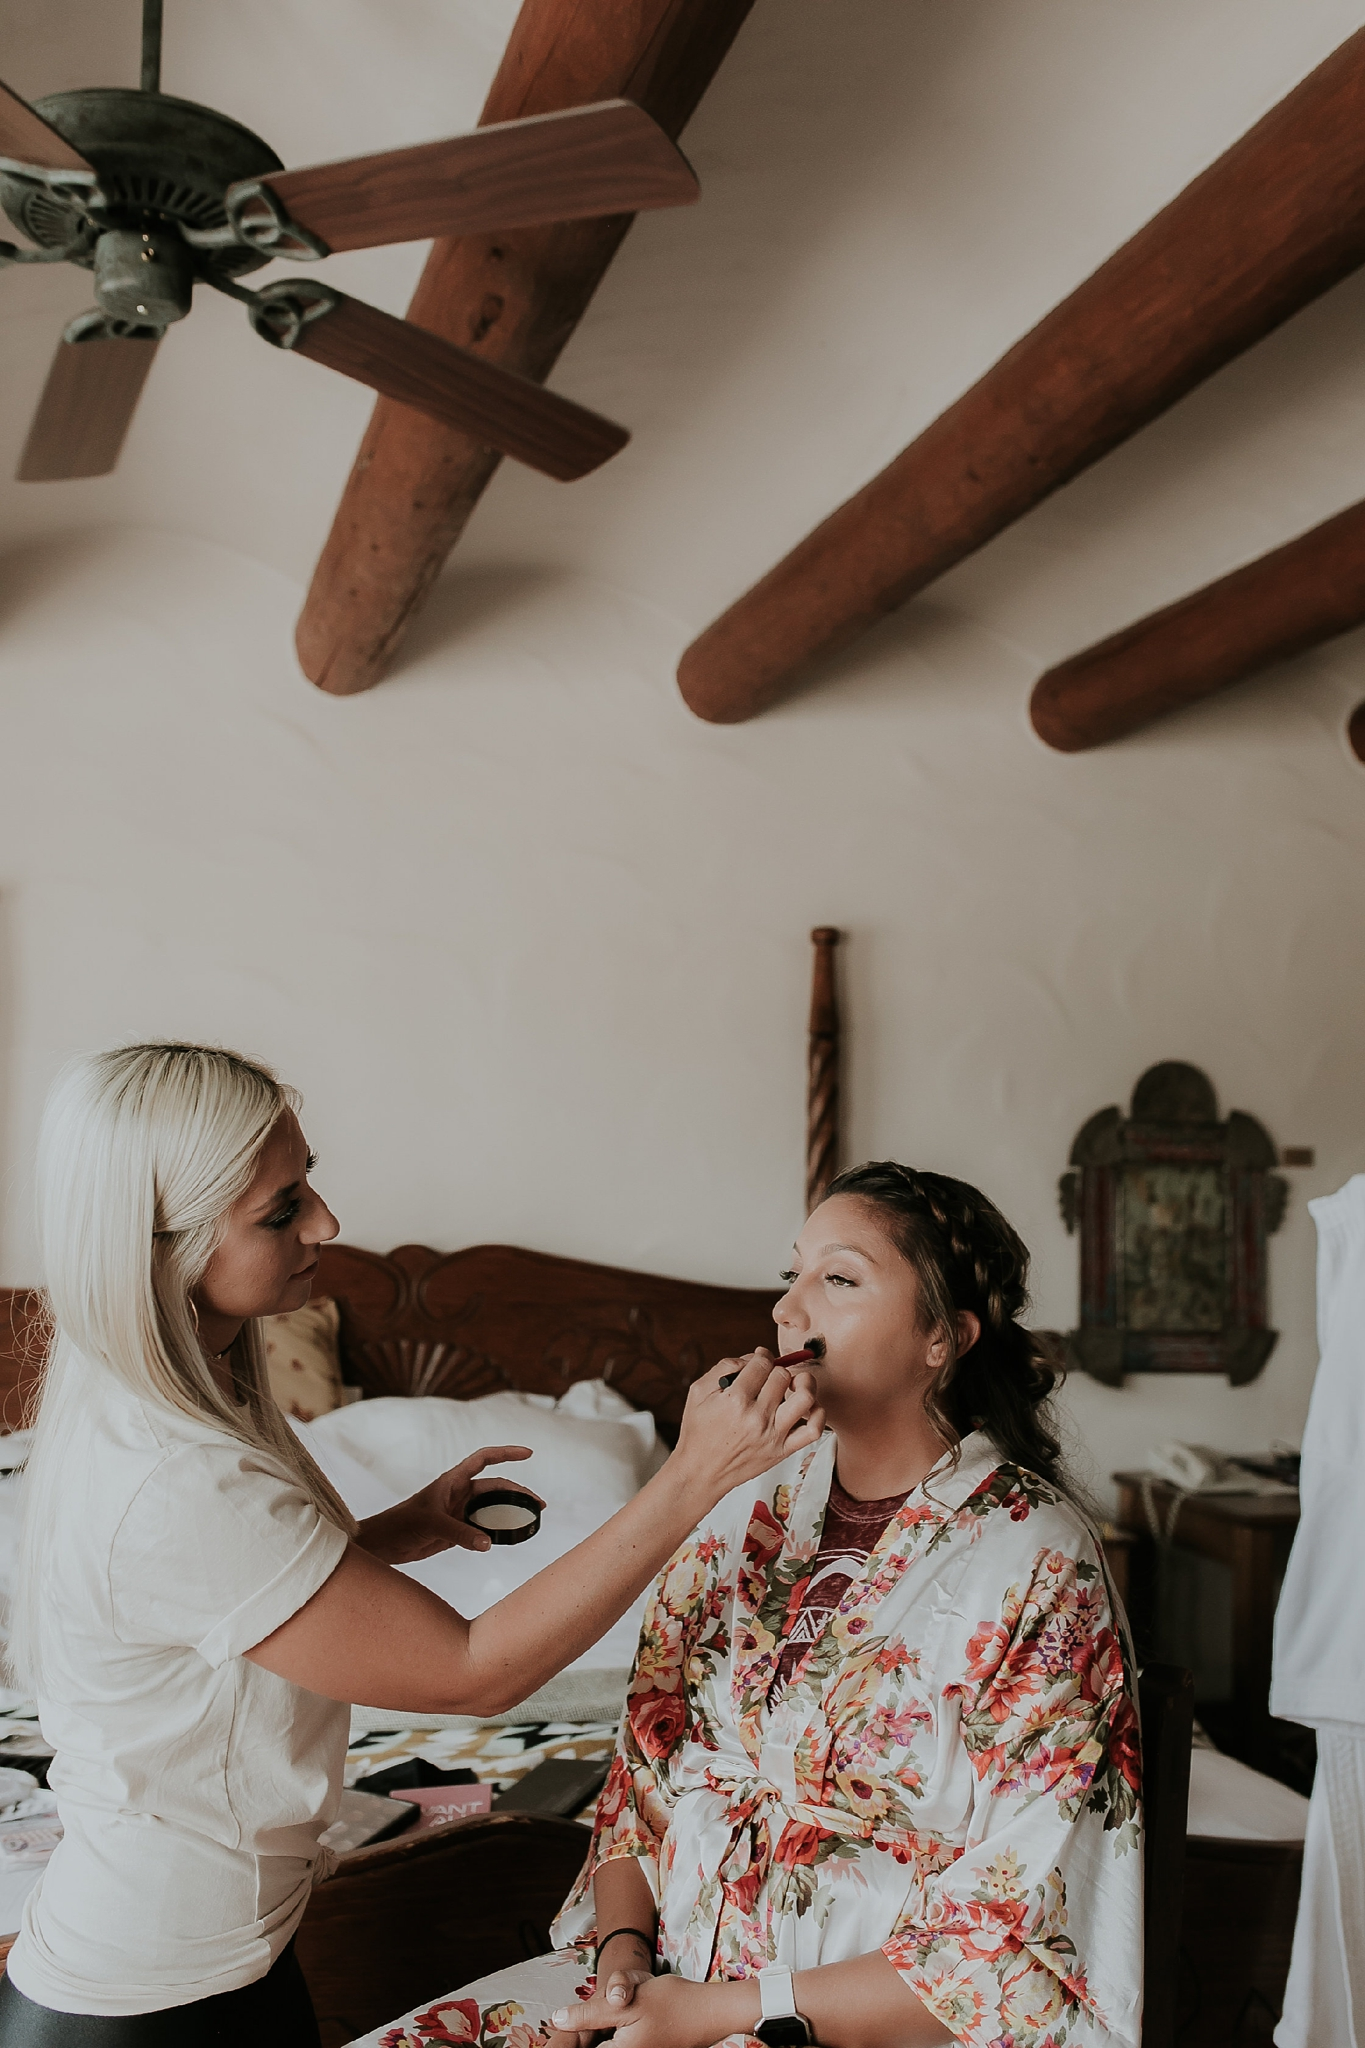 Alicia+lucia+photography+-+albuquerque+wedding+photographer+-+santa+fe+wedding+photography+-+new+mexico+wedding+photographer+-+new+mexico+wedding+-+wedding+makeup+-+makeup+artist+-+wedding+makeup+artist+-+bridal+makeup_0054.jpg